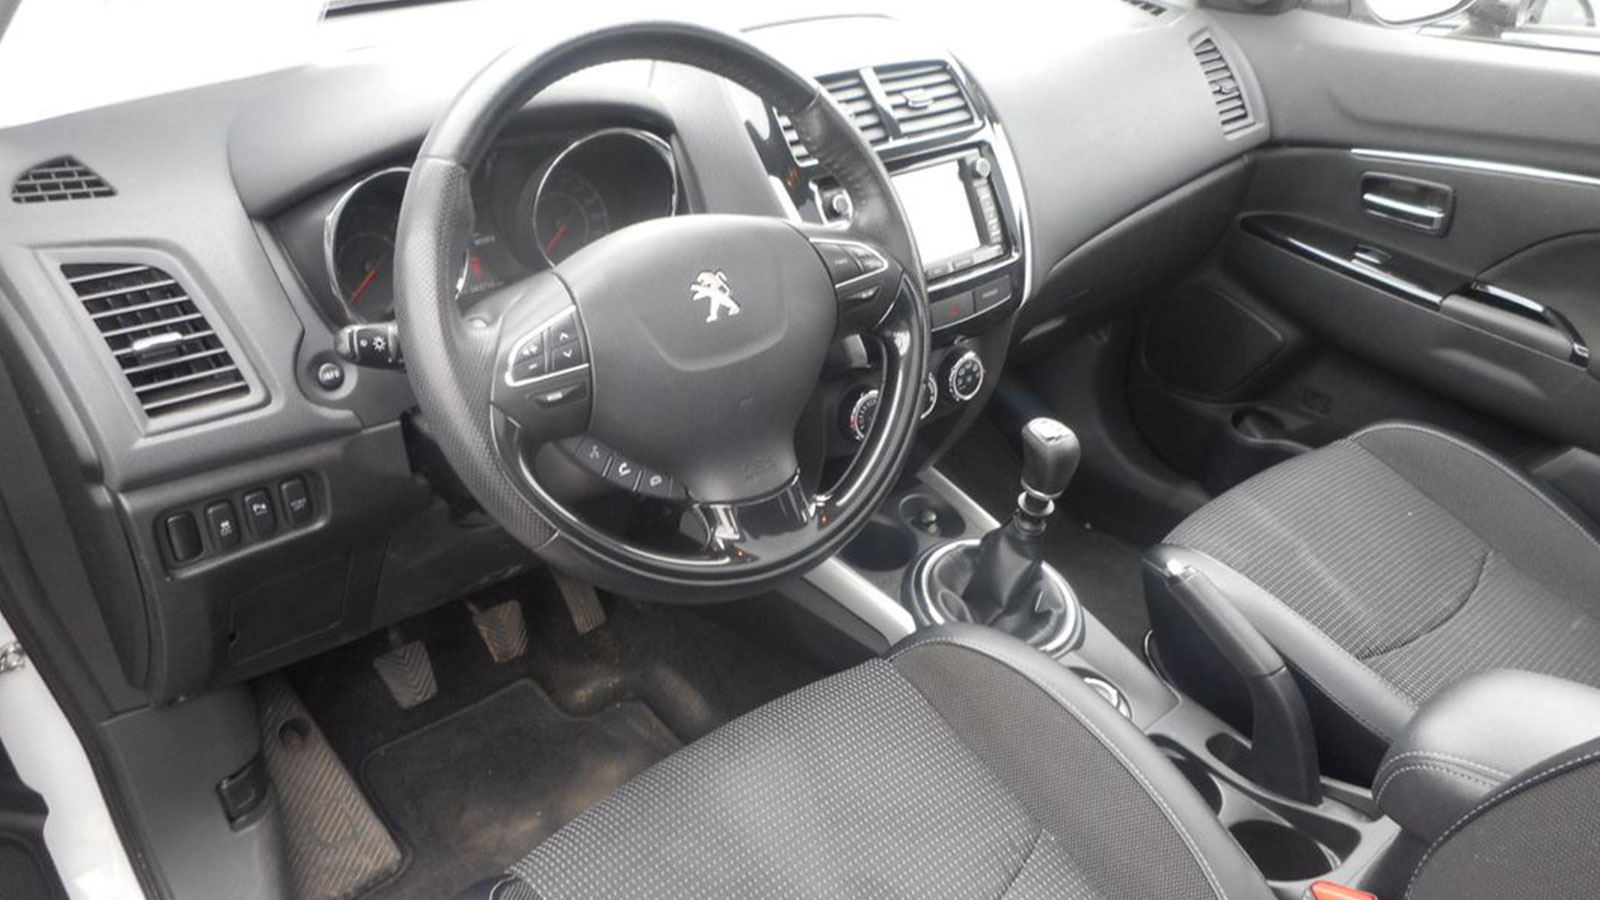 PEUGEOT 4008 1.6 HDI 115CH STYLE full